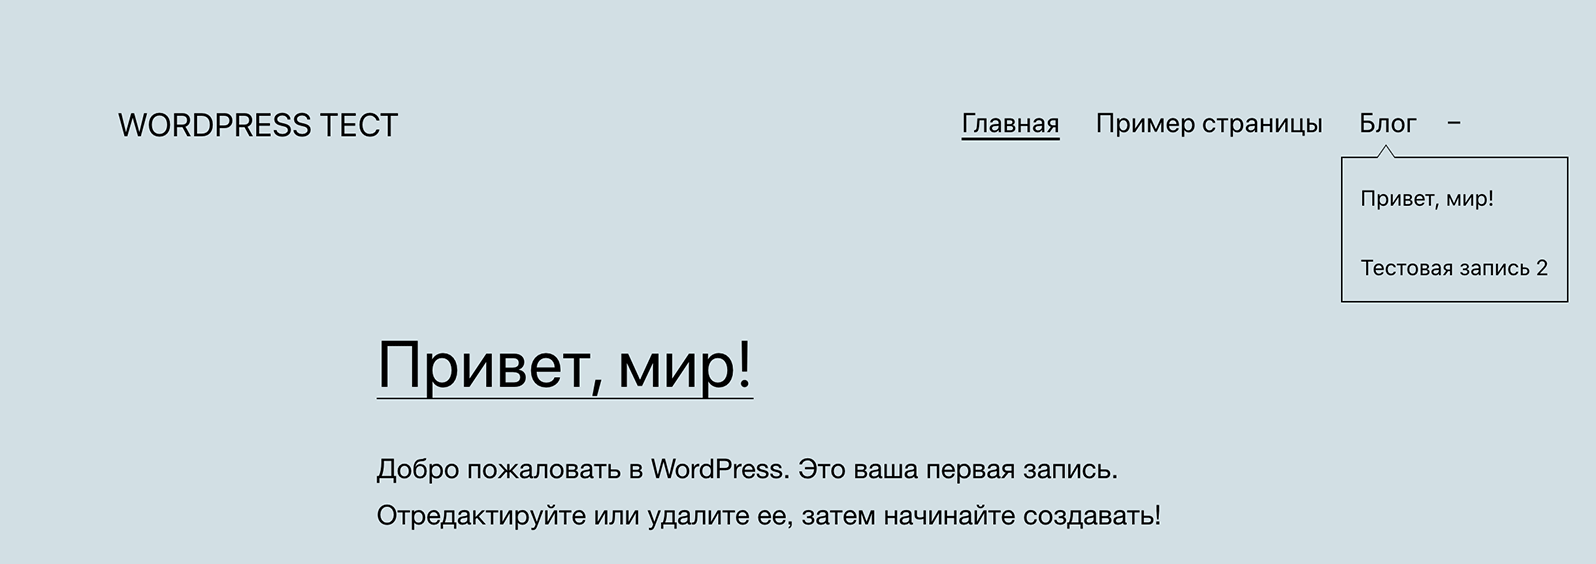 меню WordPress на сайте